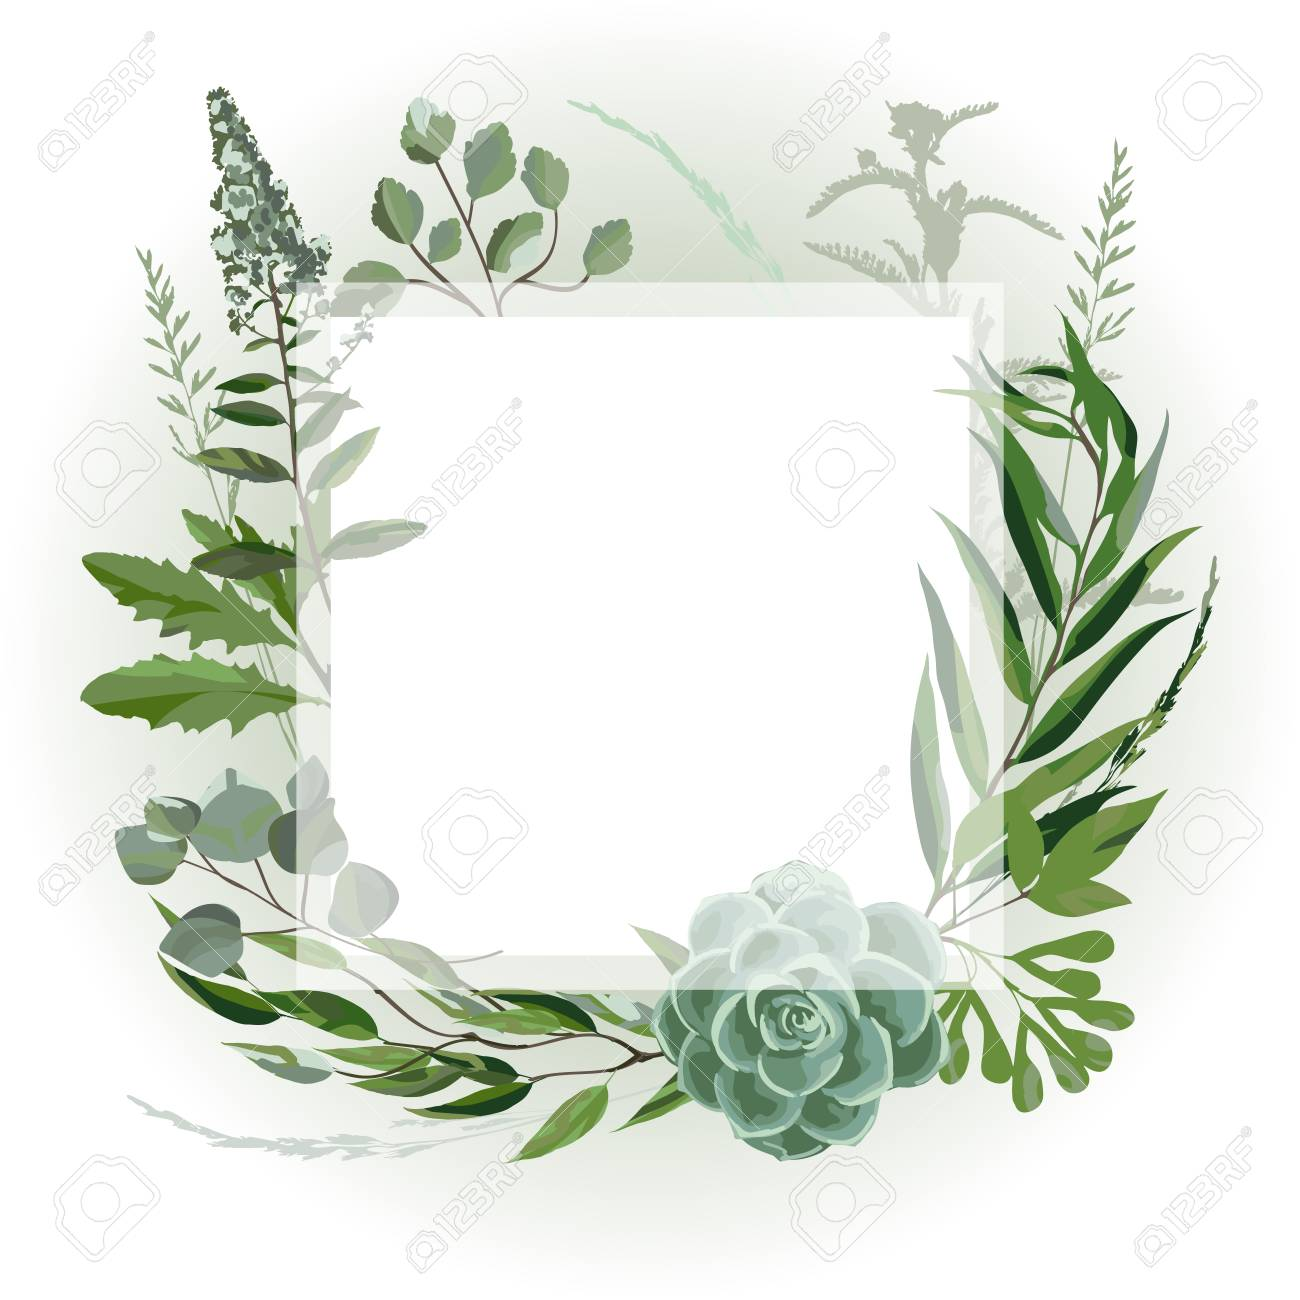 Wedding invitation frame with leaves, succulents, twigs and plants. Herbal garland with greenery and green vegetation. Template design card with tree branches. Vector illustration - 105813545